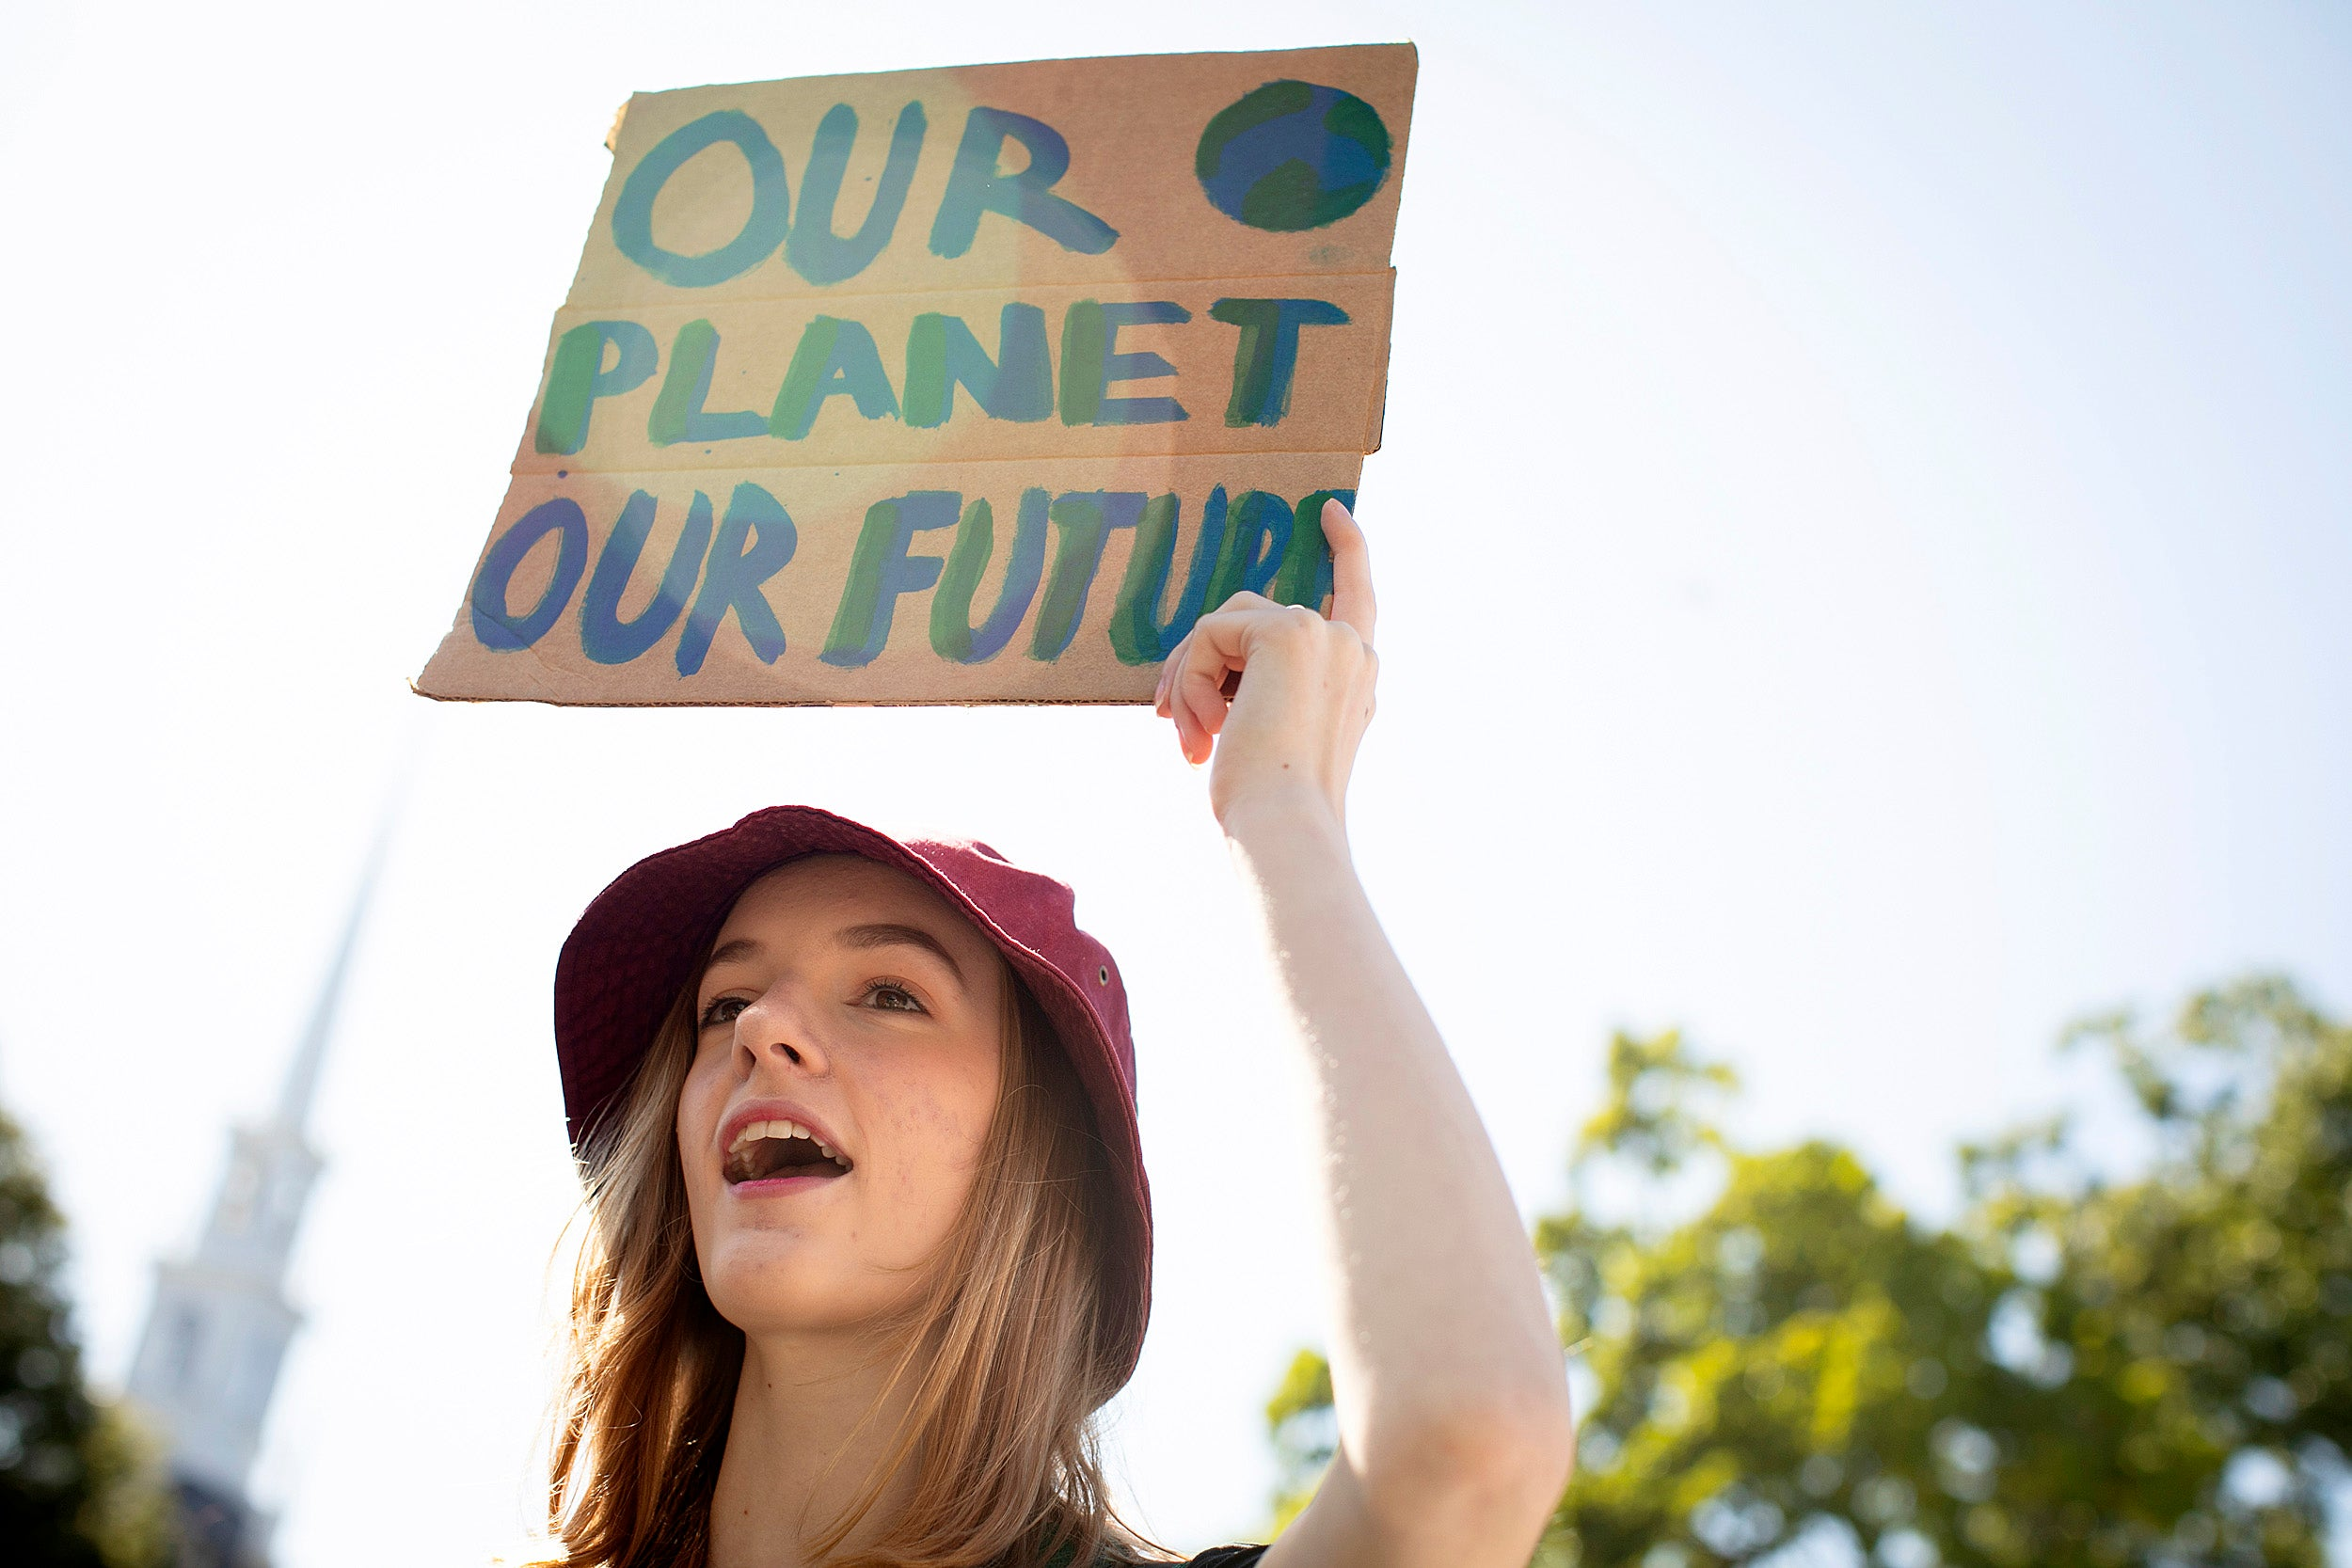 About 1,000 gather as part of international youth protest to demand urgent action by world leaders on worsening climate crisis